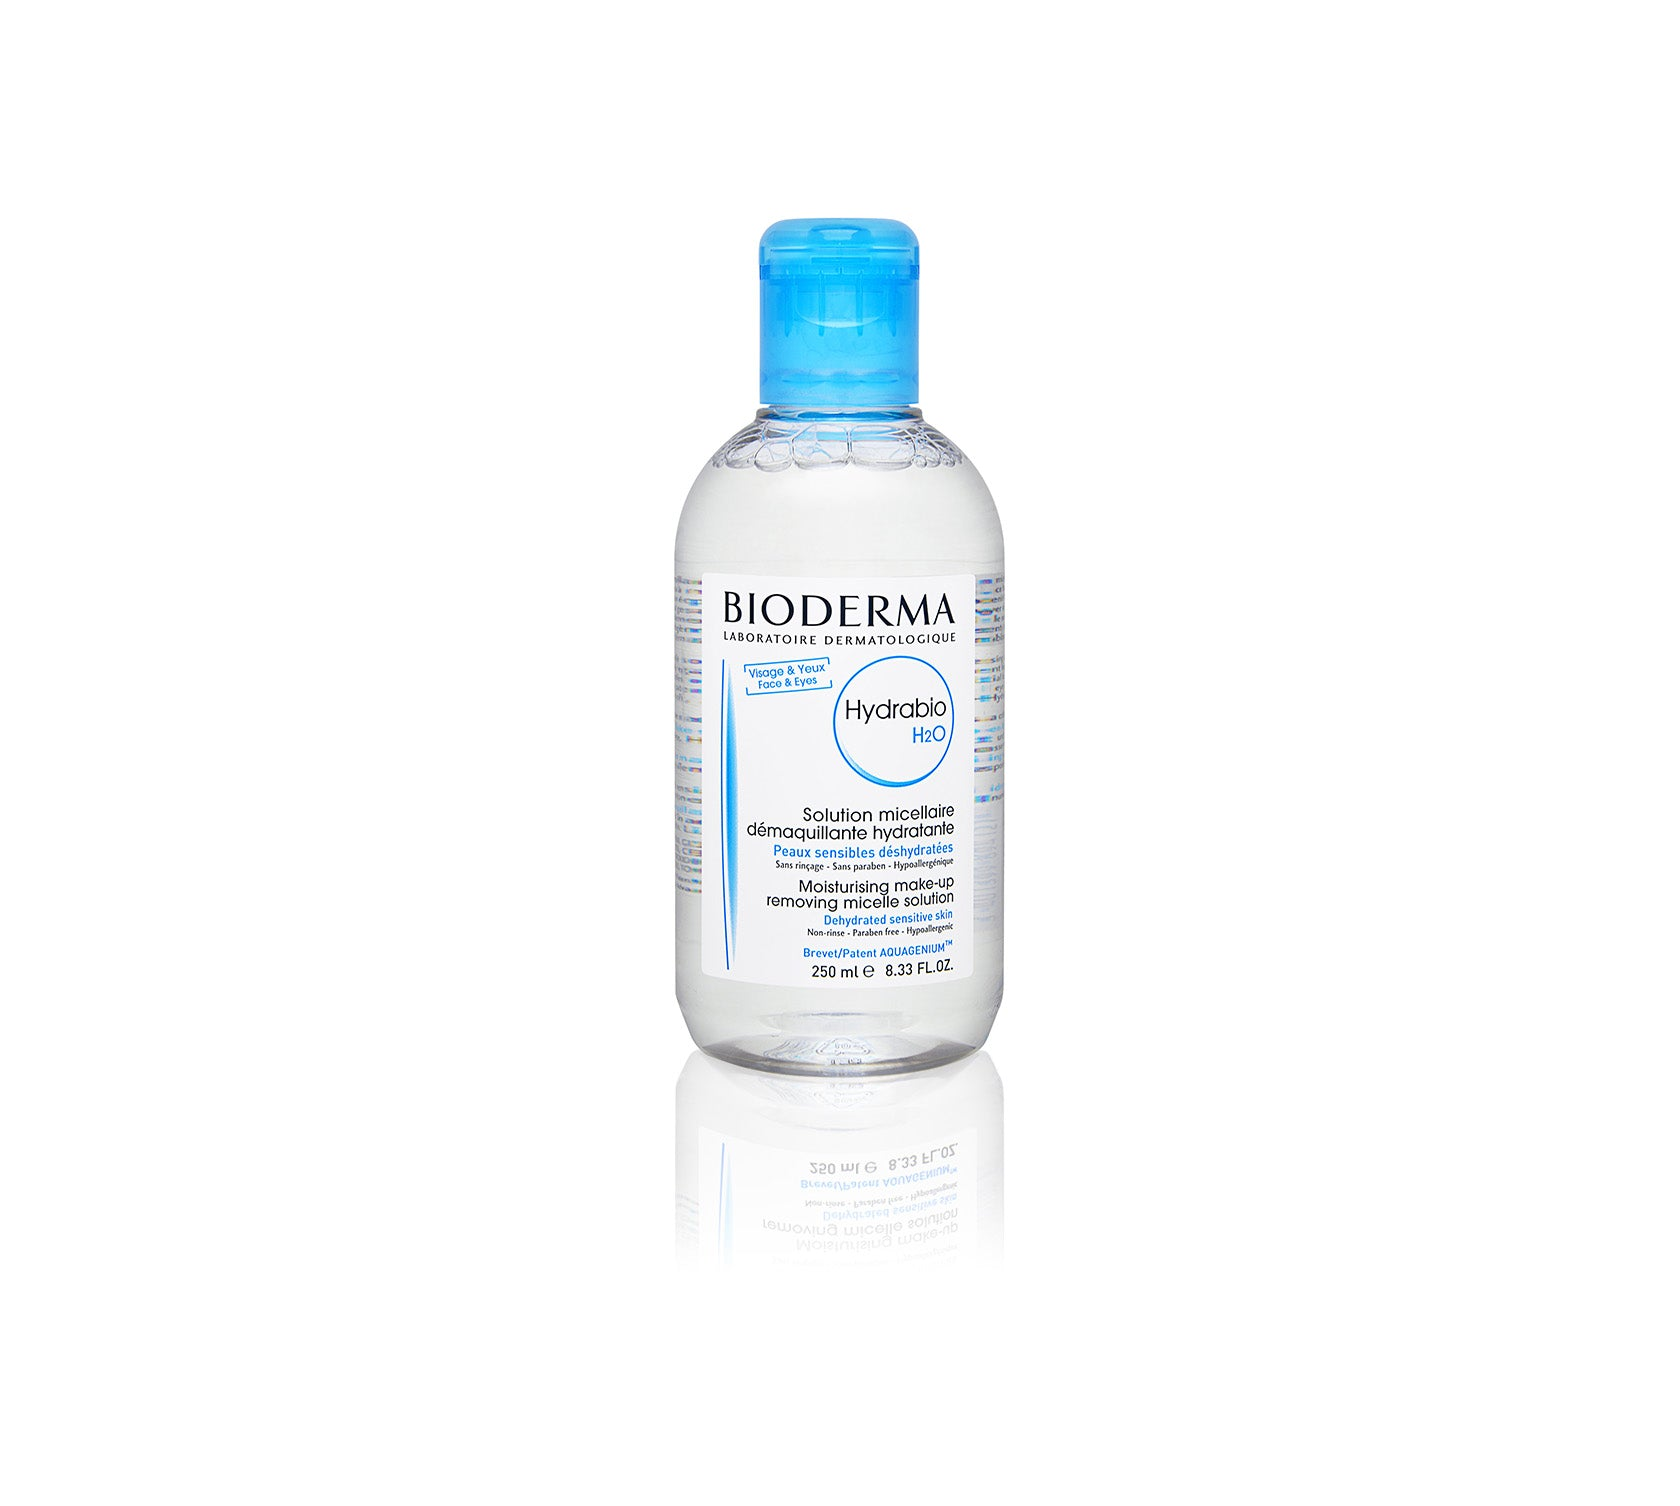 Hydrabio H2O Micelle Solution